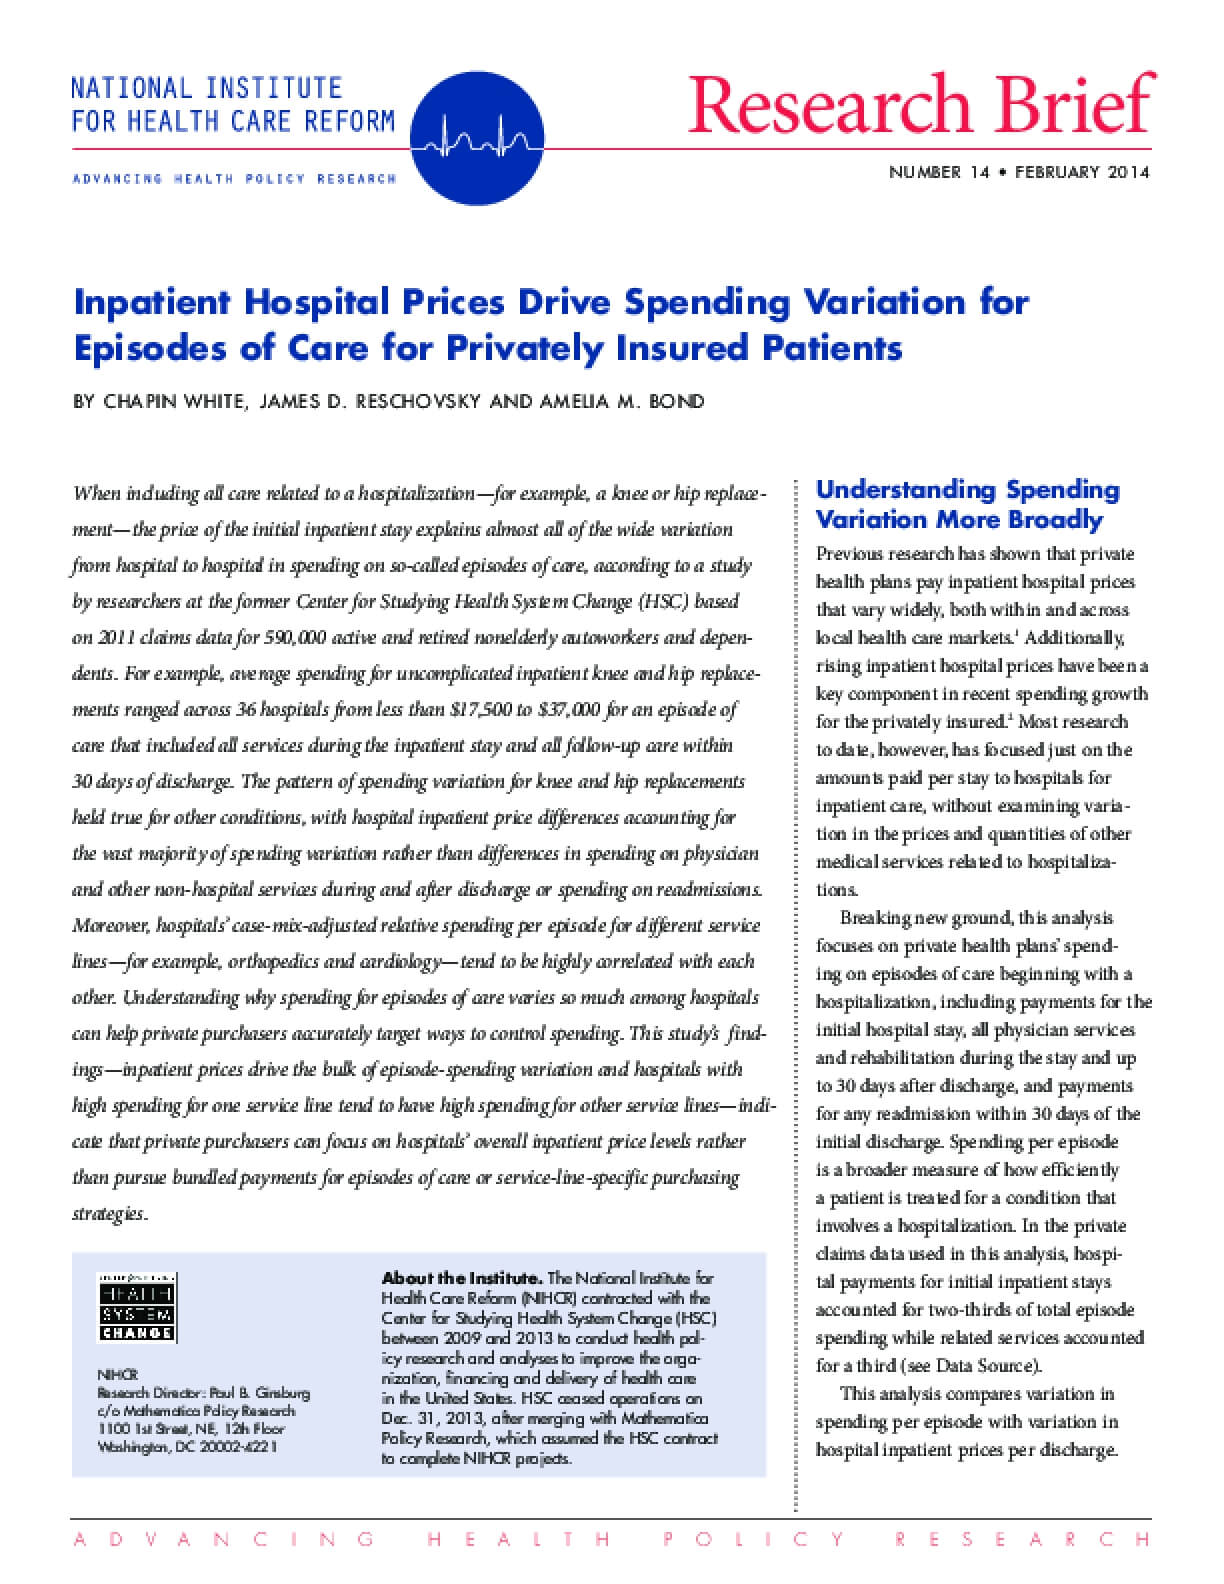 Inpatient Hospital Prices Drive Spending Variation for Episodes of Care for Privately Insured Patients